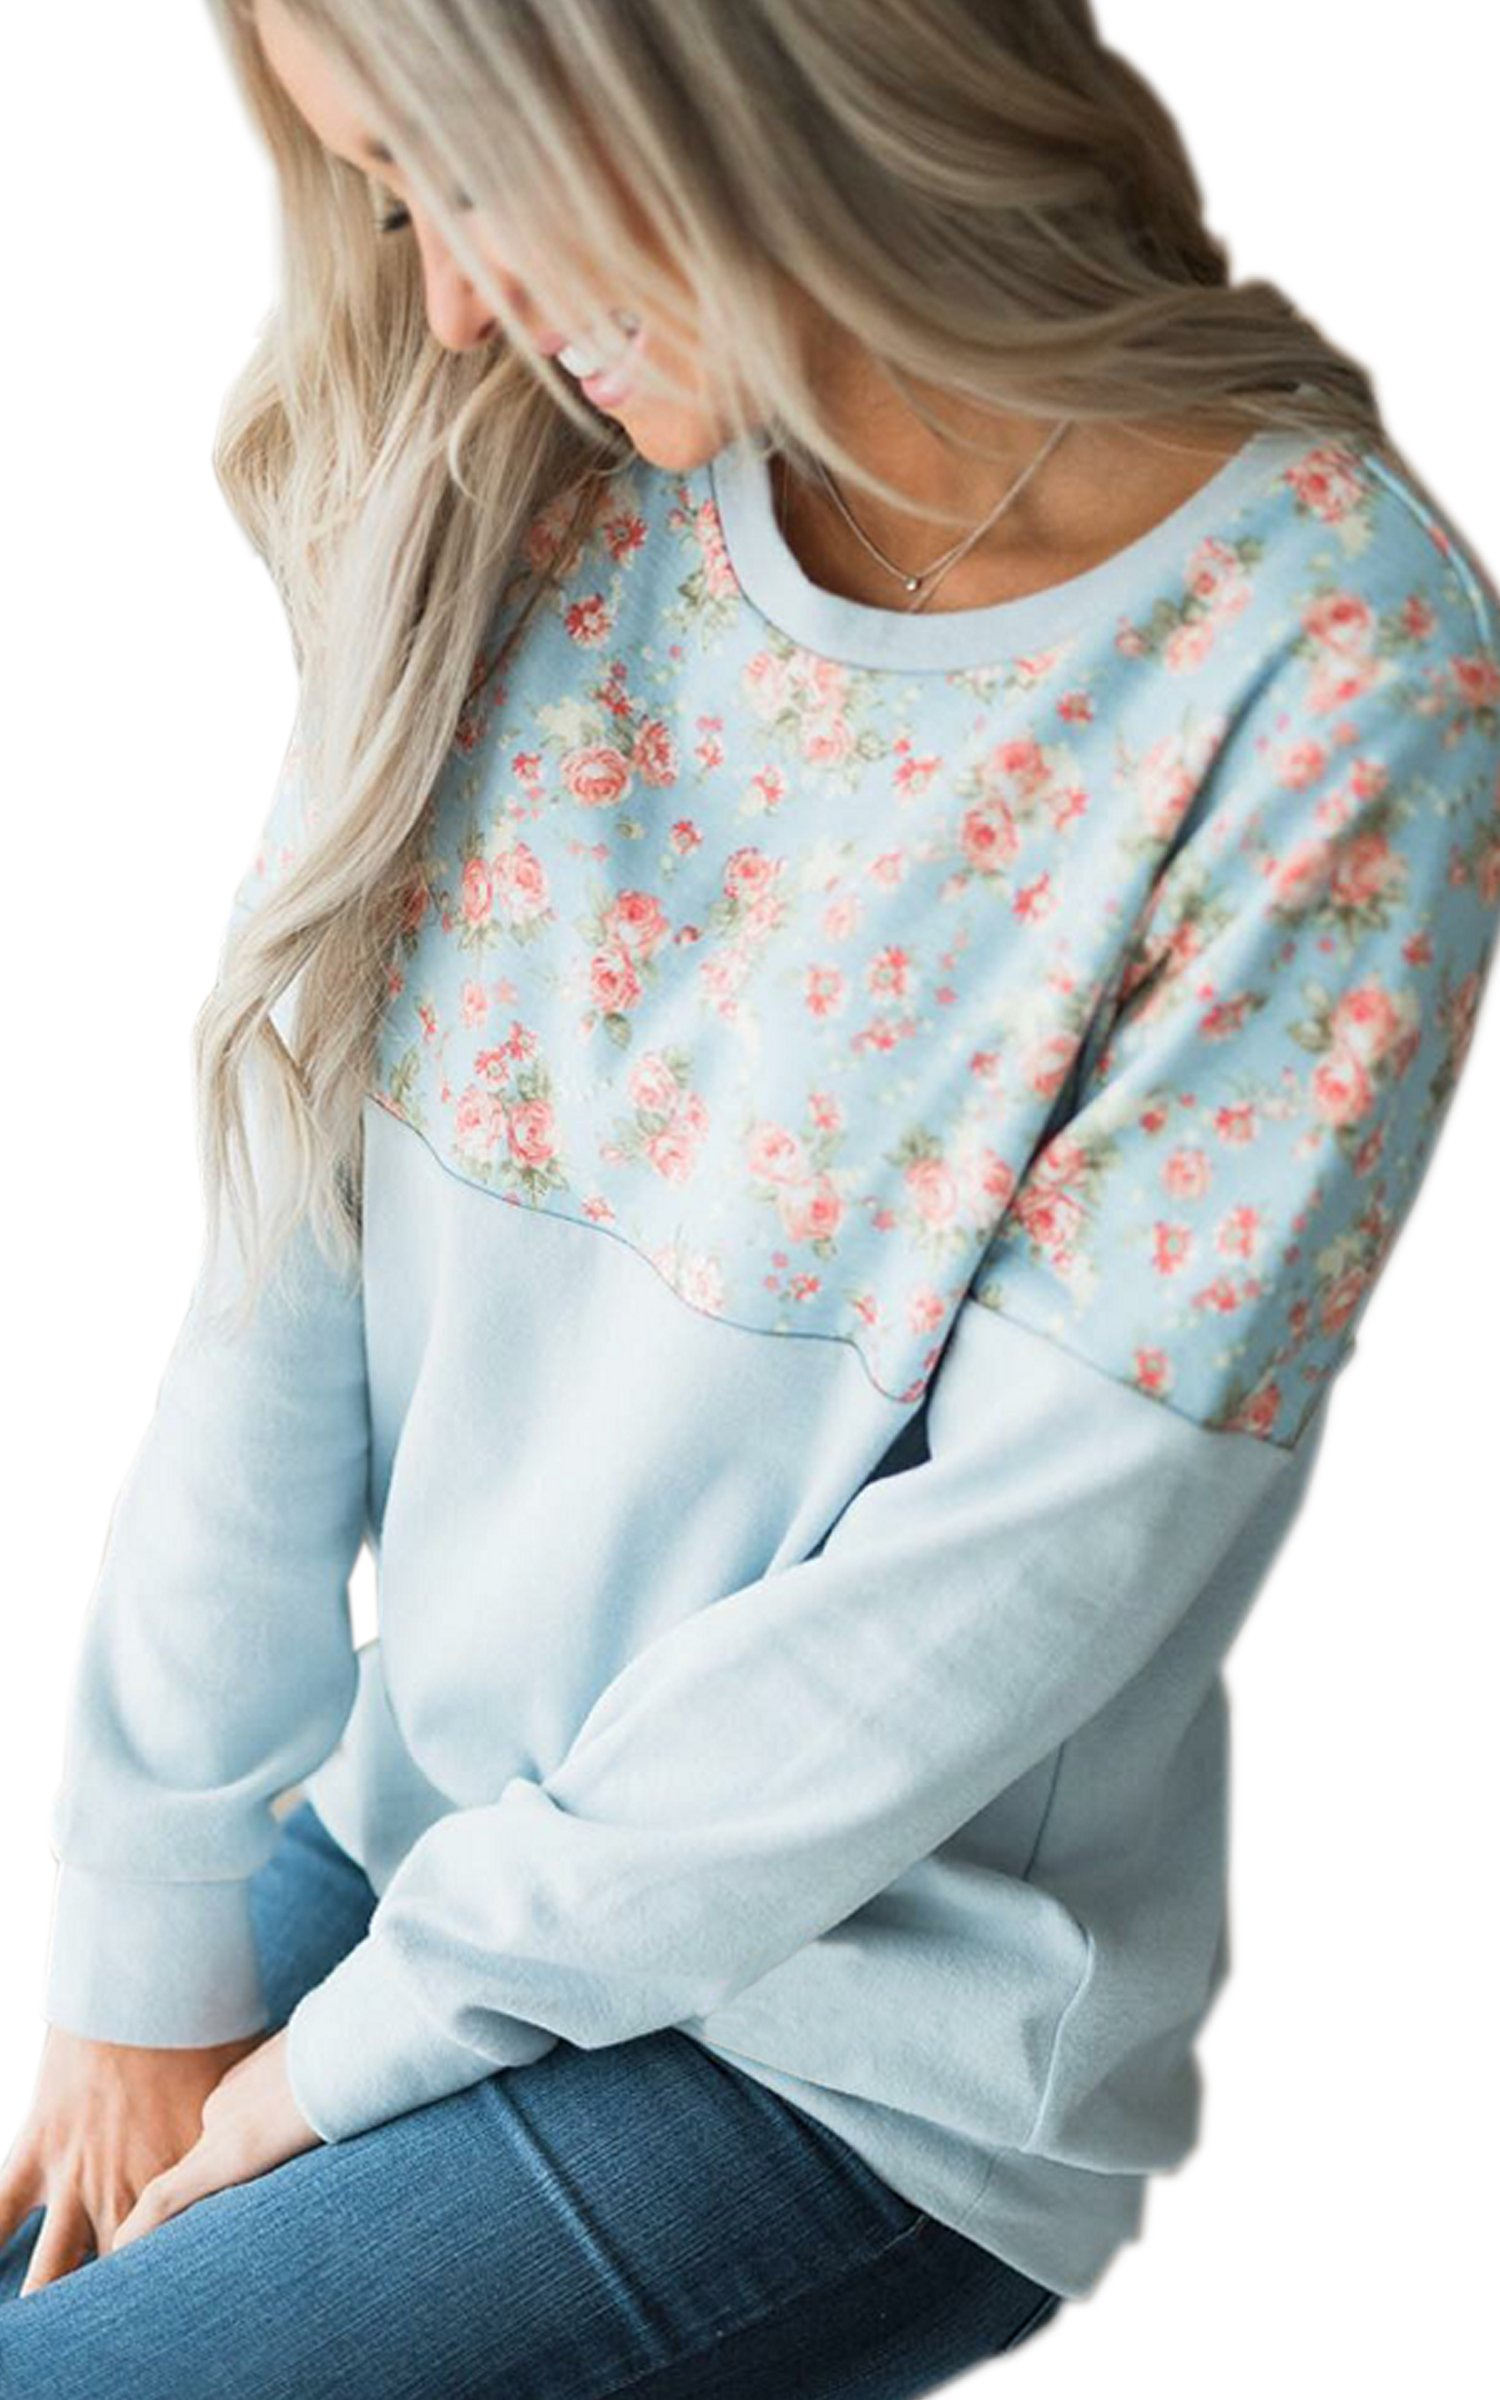 ECOWISH Womens Floral Print Casual Pullovers Round Neck Long Sleeve Tops Blue M